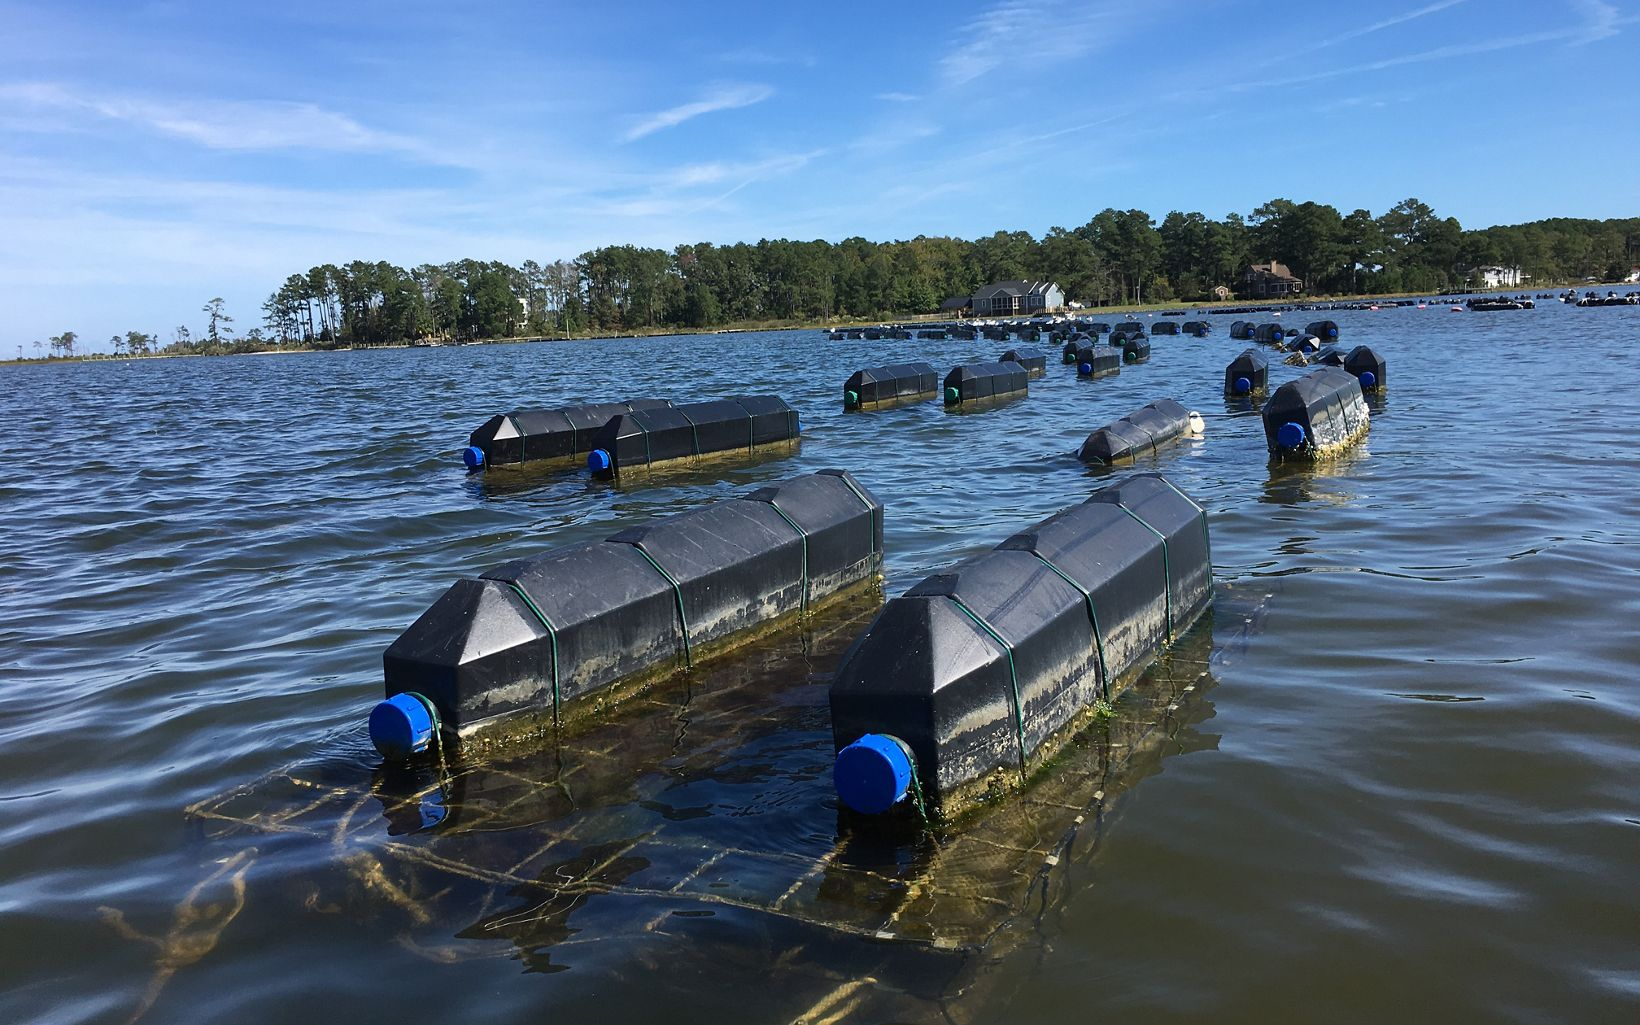 White Stone Oyster Company uses a floating cage system to grow their oysters. Each cage holds three mesh bags of oysters.